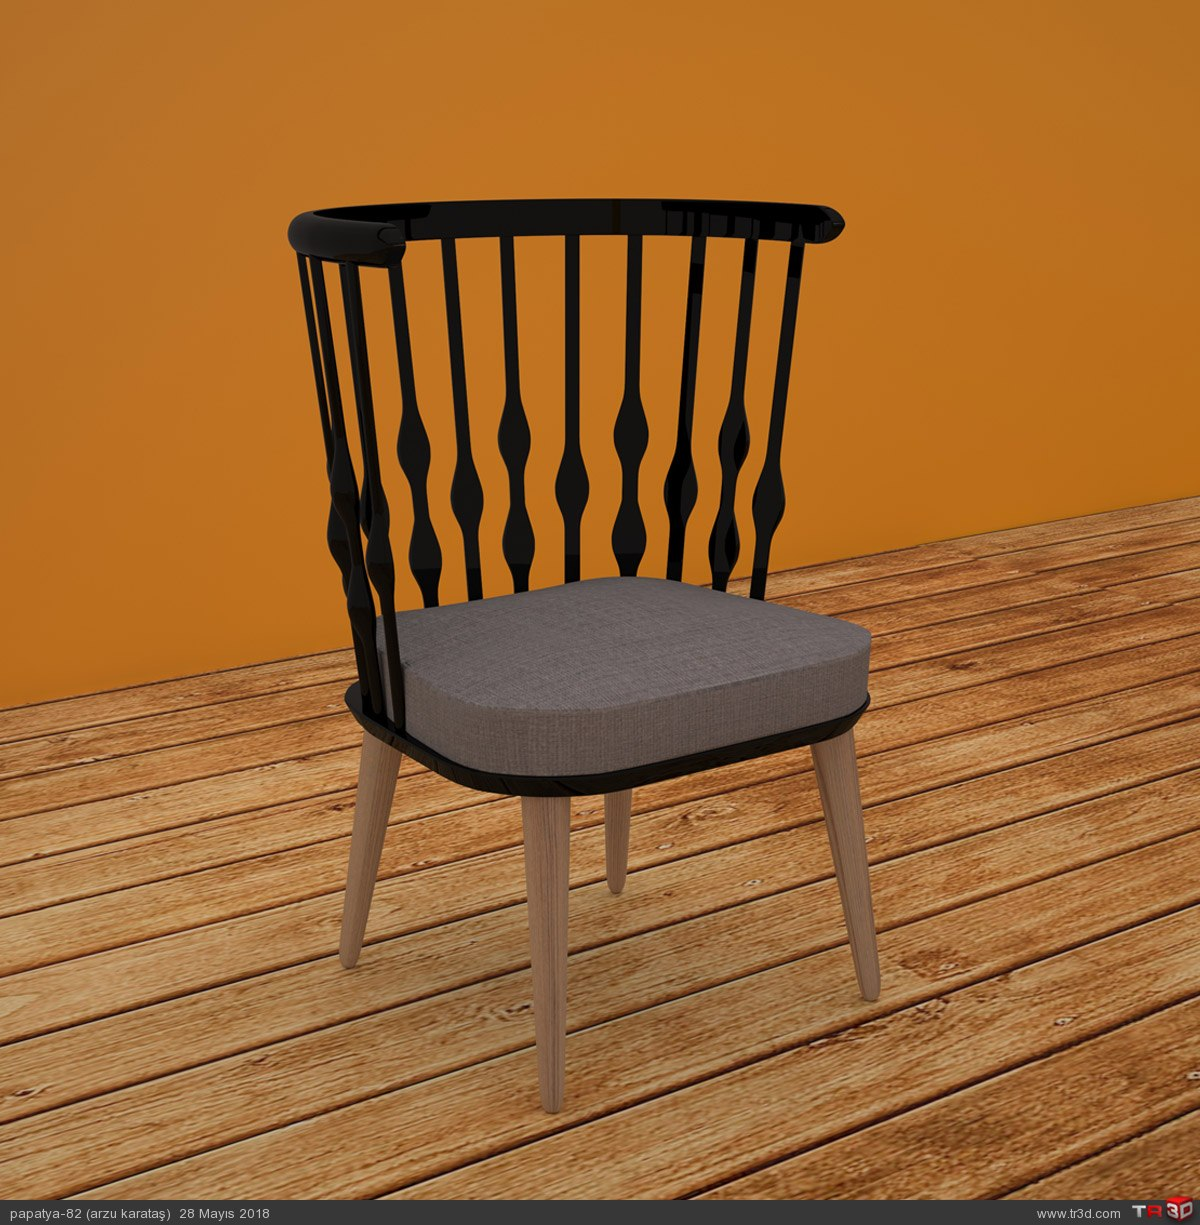 design by patricia urquiola nub chair